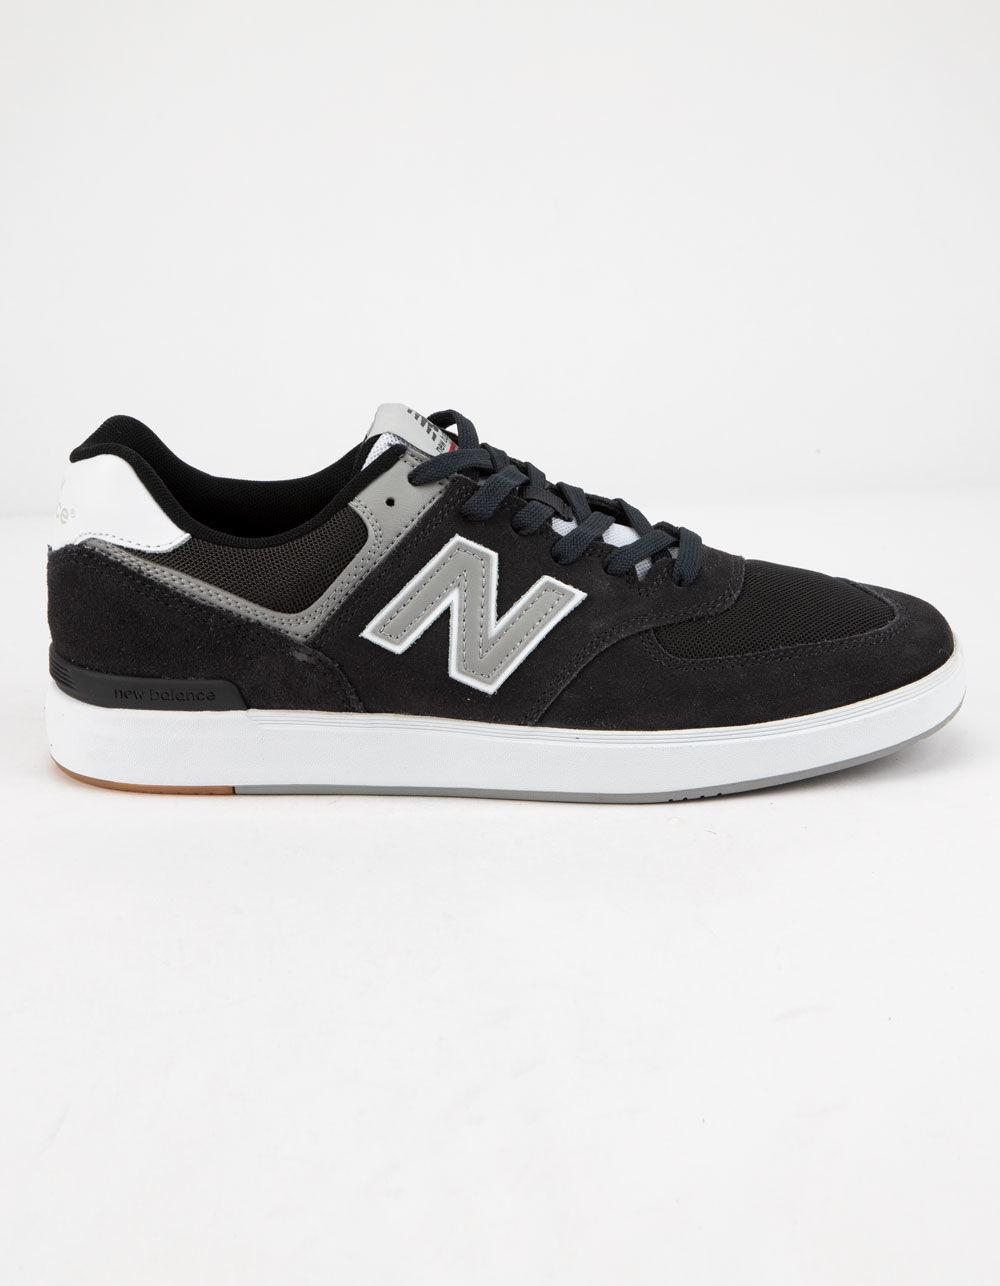 c23be4a7589c8 New Balance Am574 Shoes in Black for Men - Save 44% - Lyst